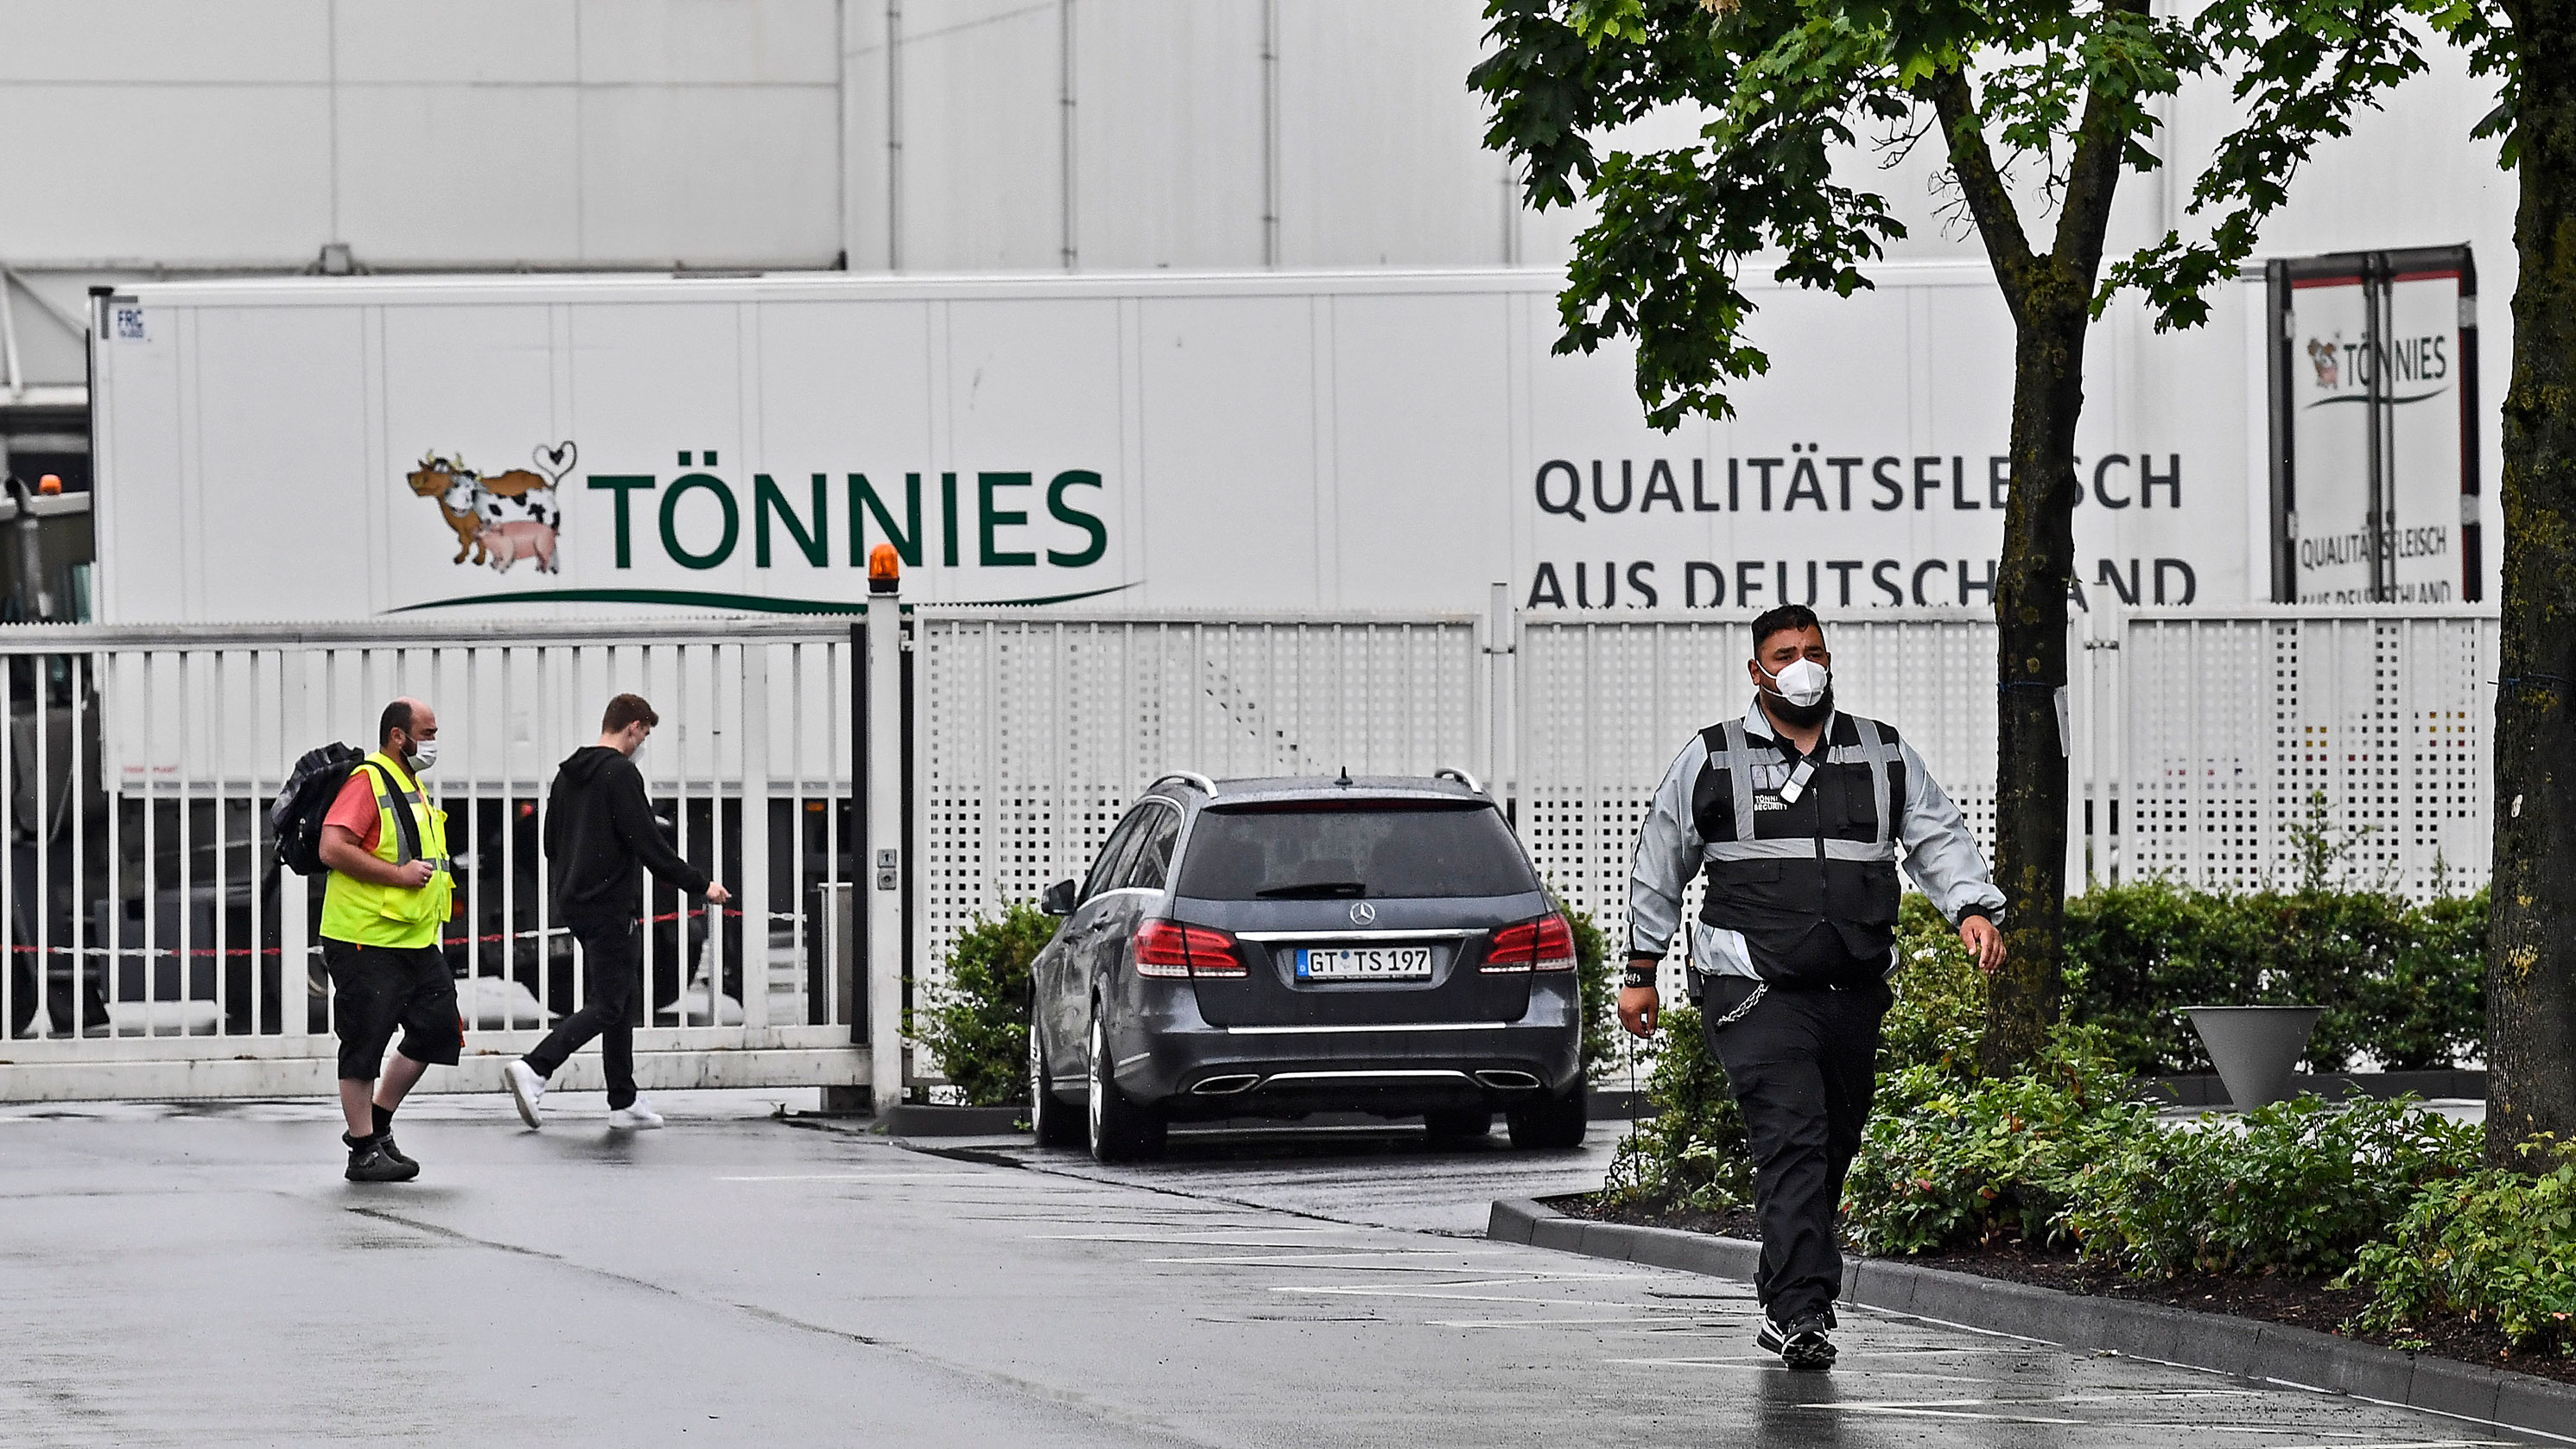 A member ofthe security walks in front of the Toennies meatpacking plant in Rheda-Wiedenbrueck, Germany, on June 18.